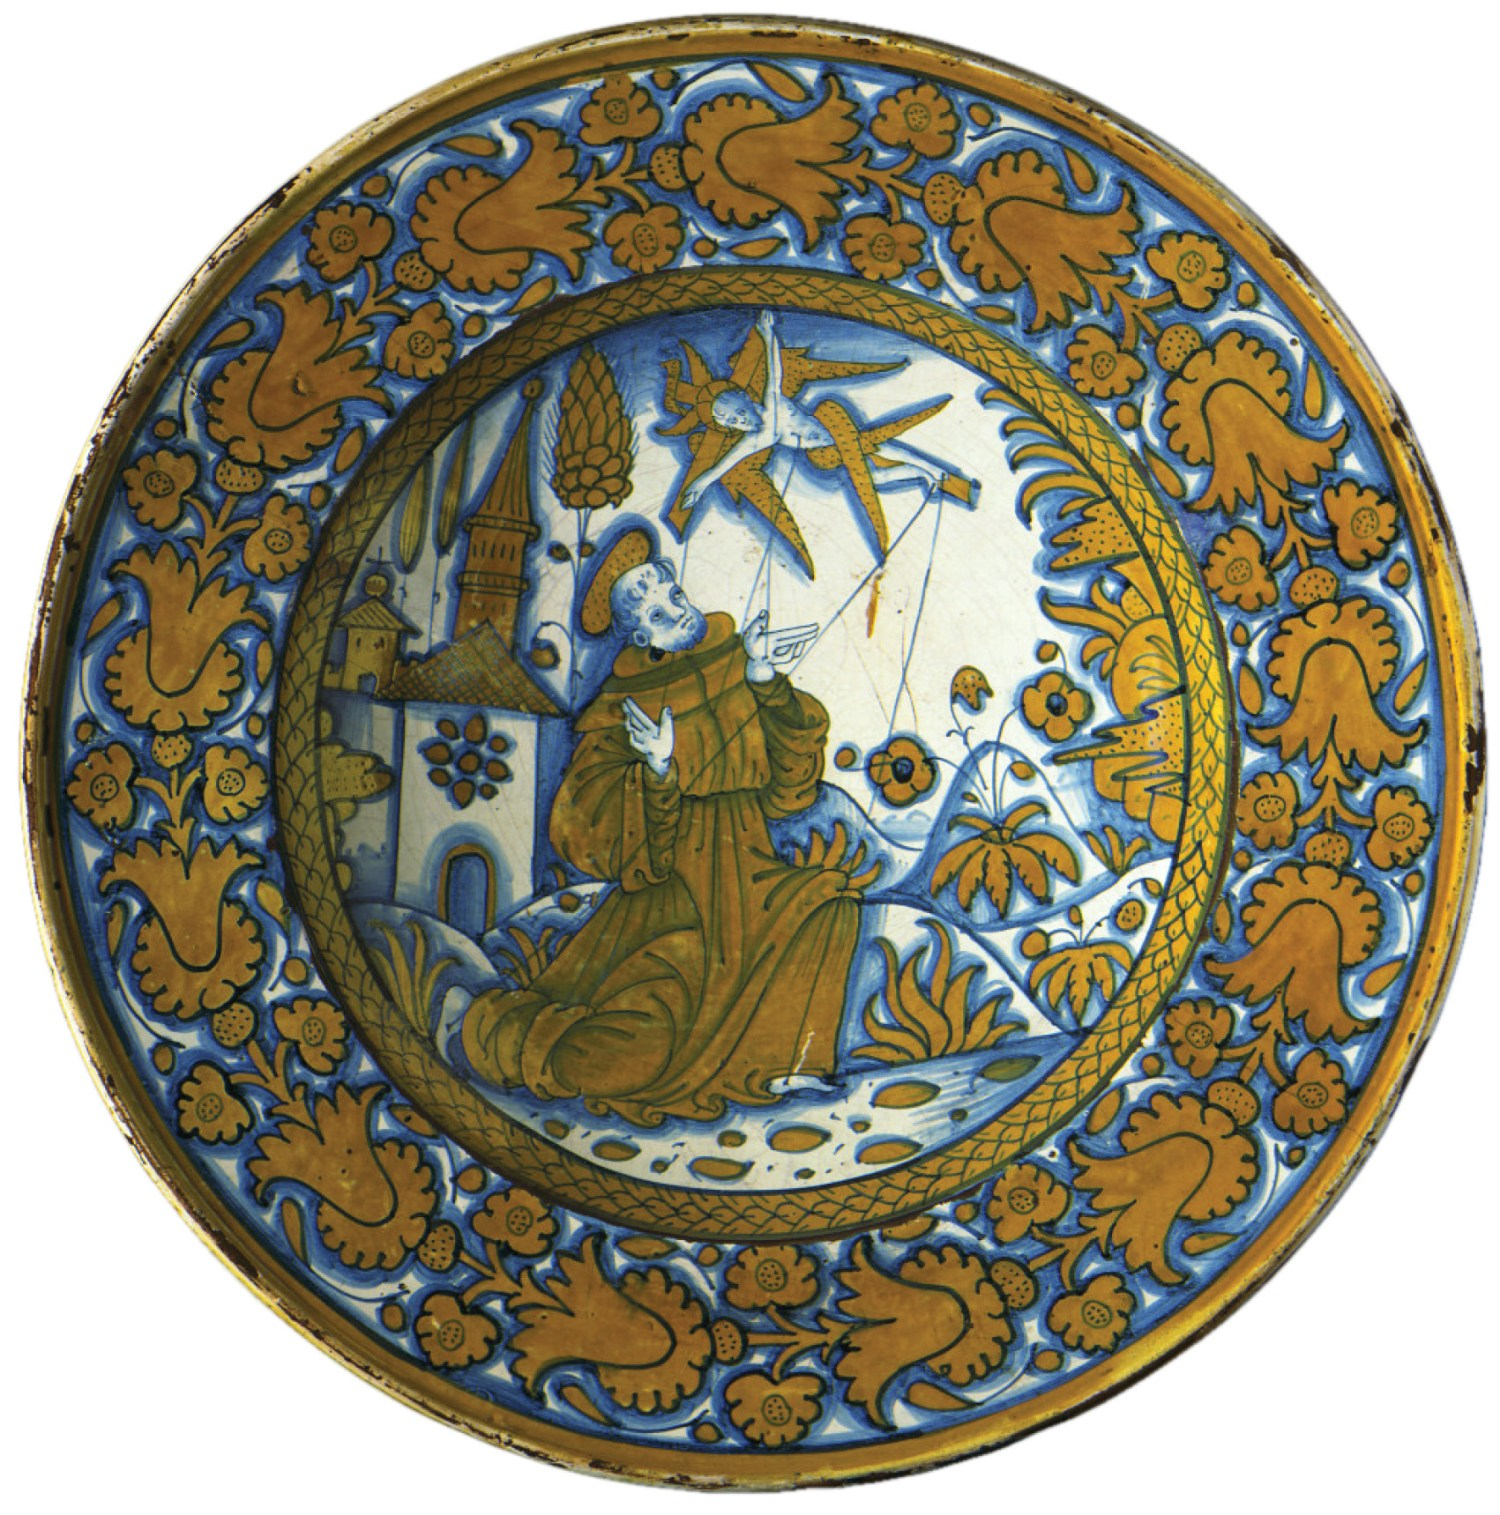 Opposite Maiolica plate with St Francis of Assisi receiving the stigmata. Possibly by Giacomo Mancini (known as El Frate), c.1530-1545. Size: 41cm in diameter